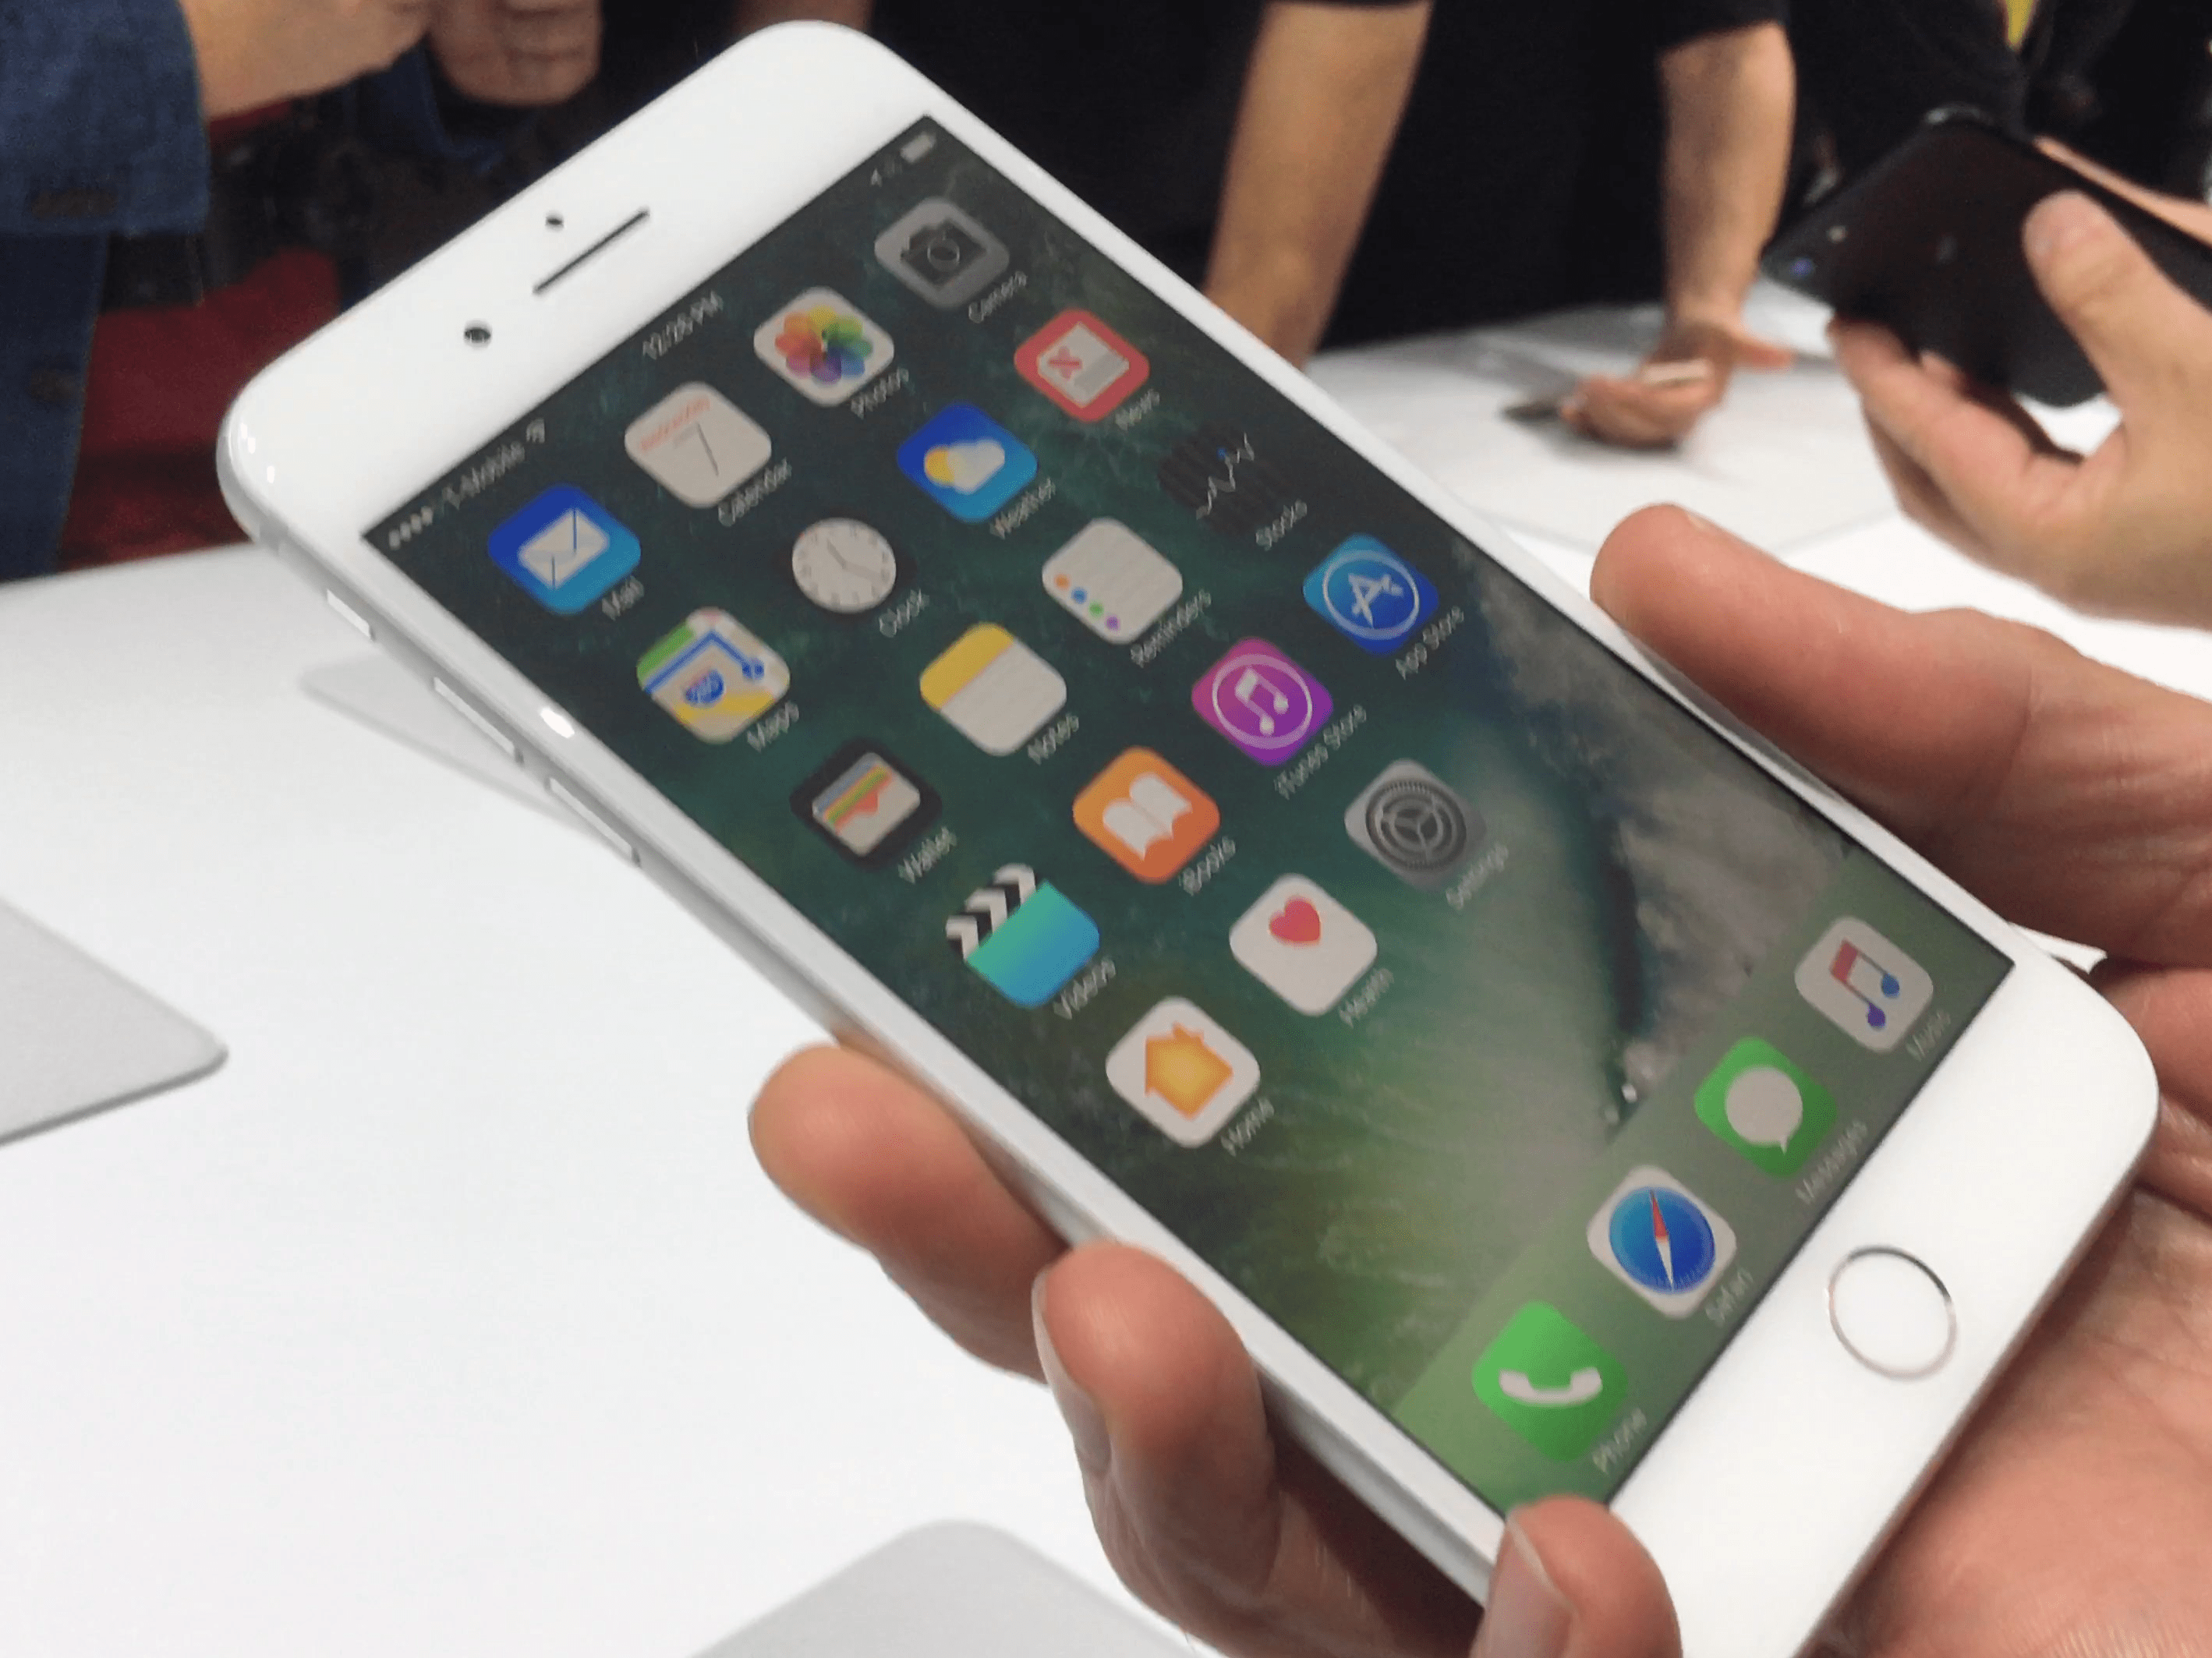 Apple reports on its Italian website about the slowdown of the iPhone